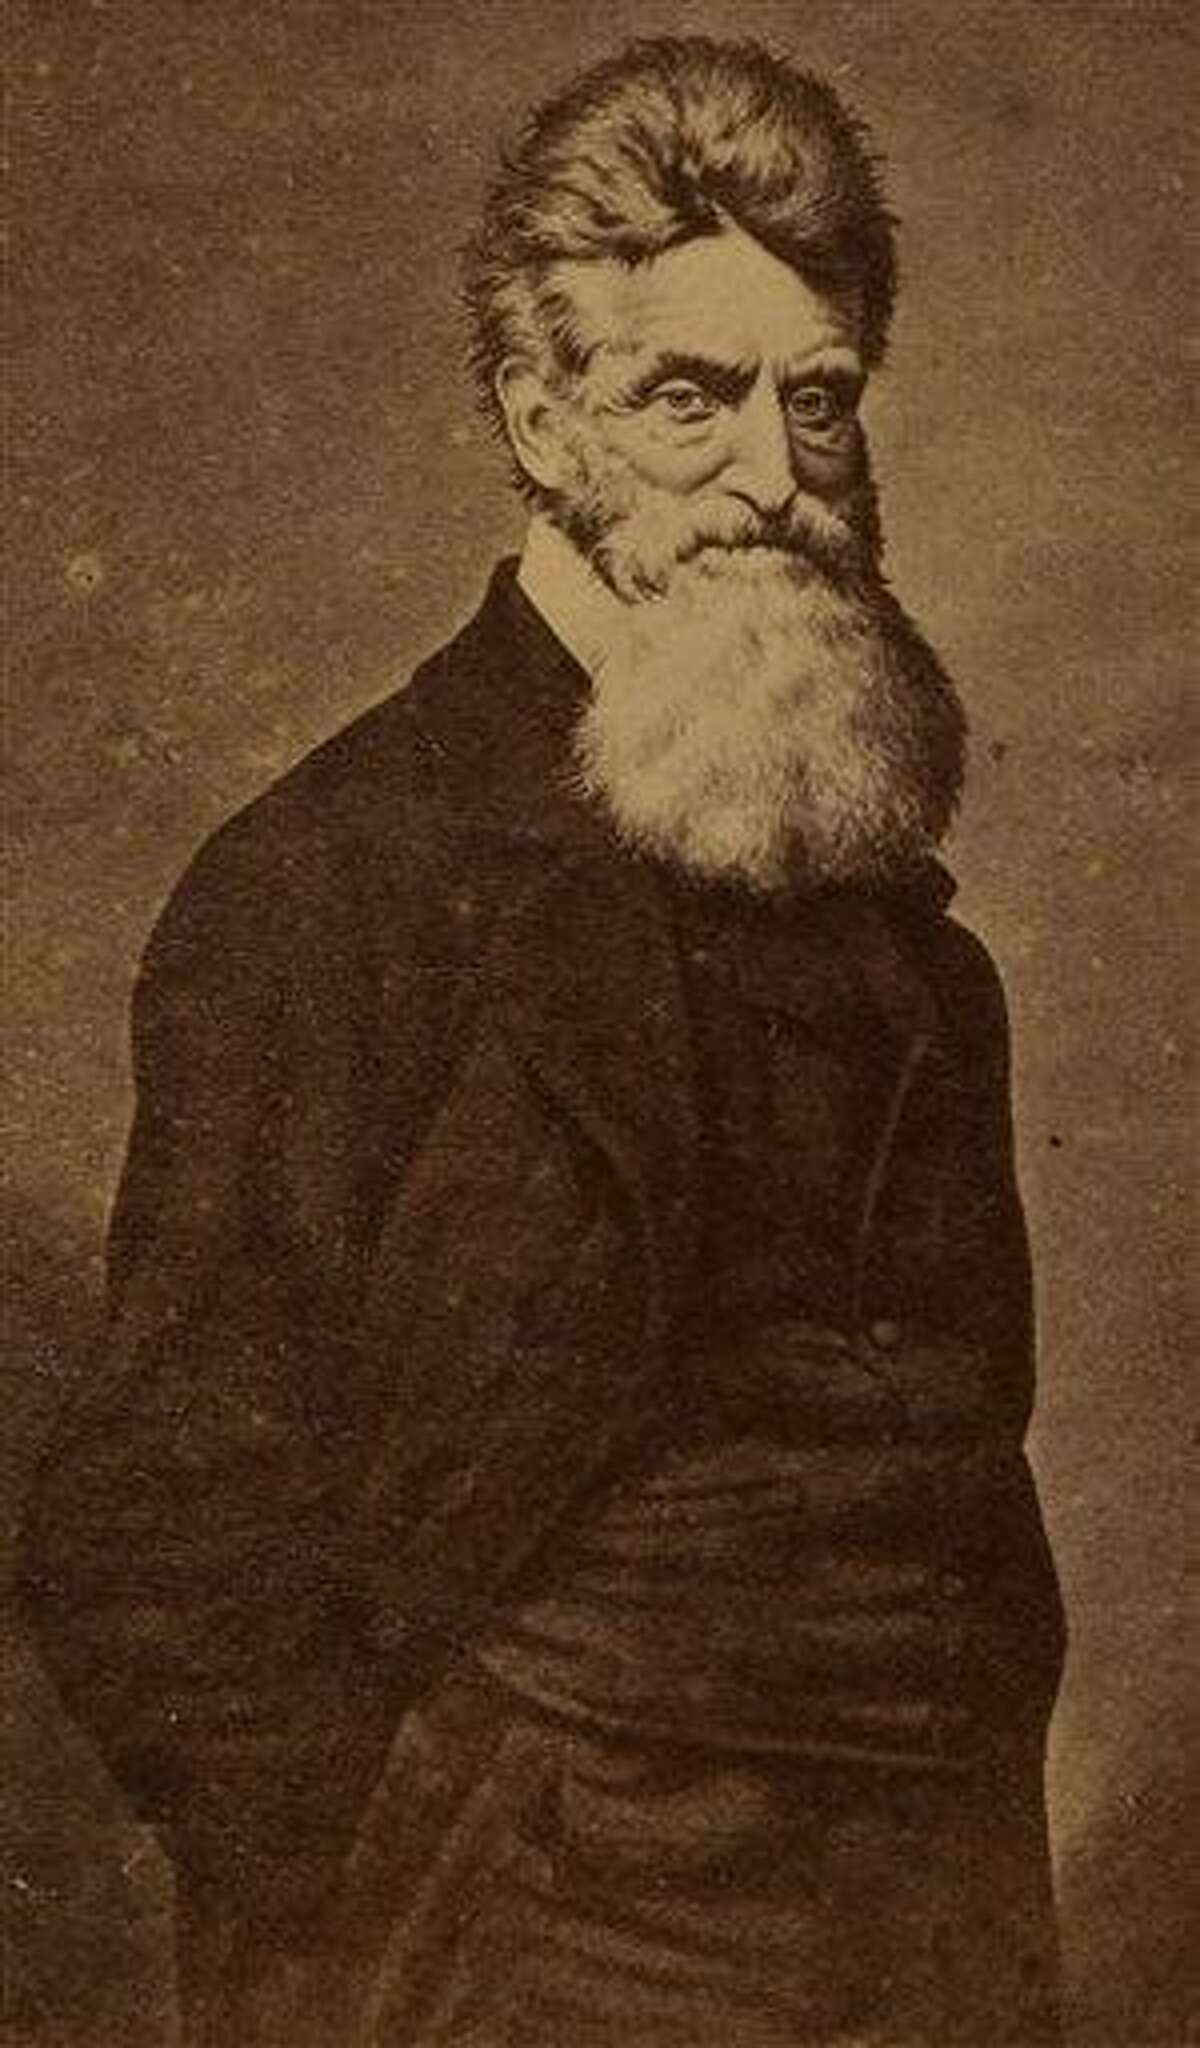 This June 17, 2013 provided by Heritage Auctions, shows a Carte De Visite of John Brown, likely as he looked close to the time of his failed raid on Harper's Ferry W. Va. John Brown's capture of the Federal Arsenal at Harper's Ferry on Oct. 17, 1859 as part of a failed attempt to incite a slave uprising is seen by most historians as the spark that ignited the Civil War. (AP Photo/Heritage Auctions)